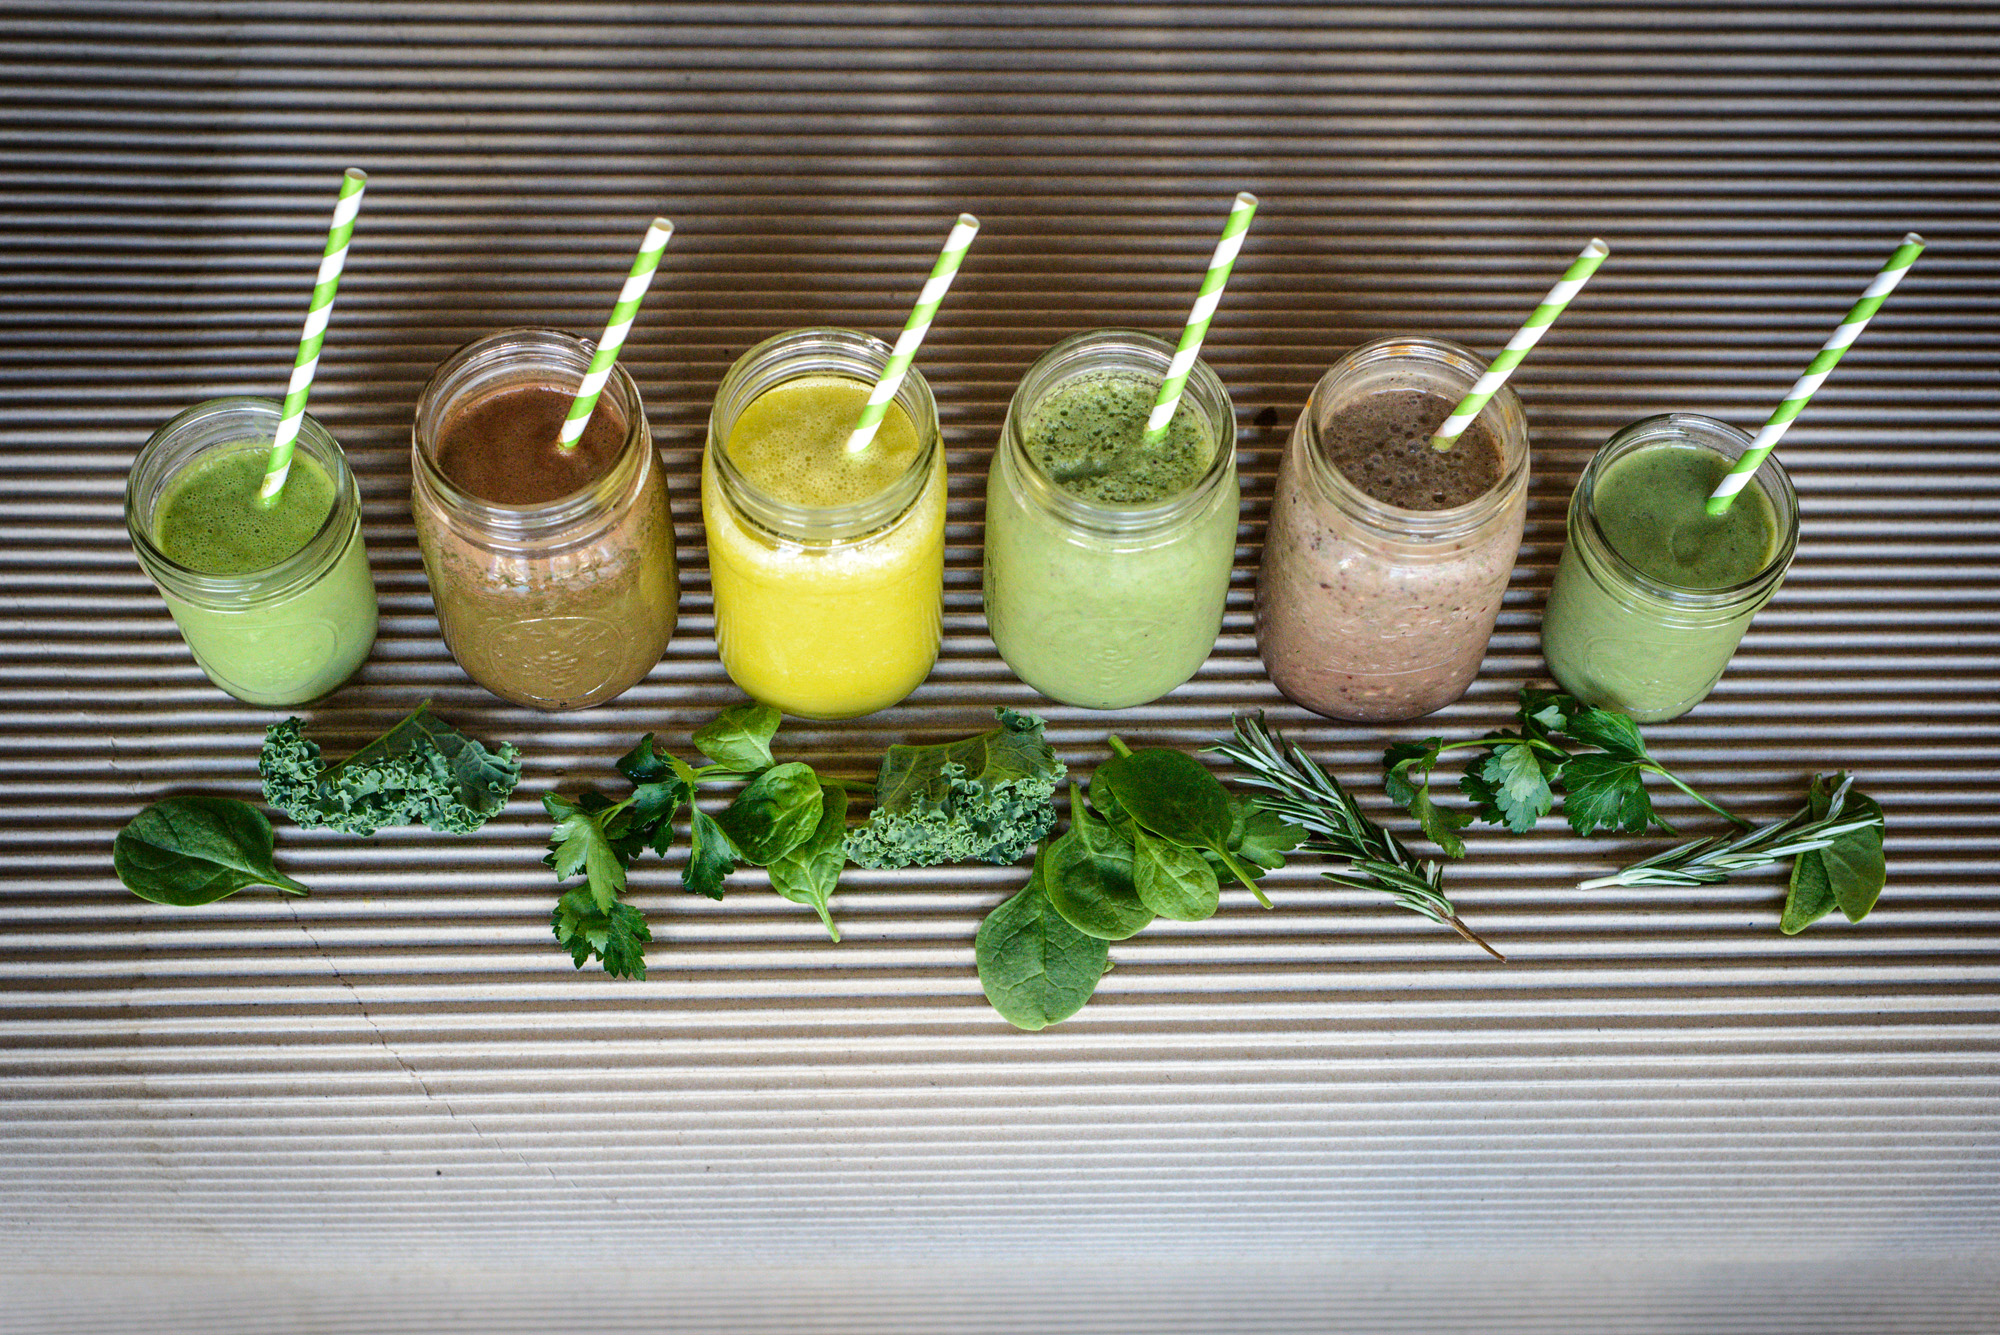 Join The 21 Day Green Up Smoothie Challenge And Make